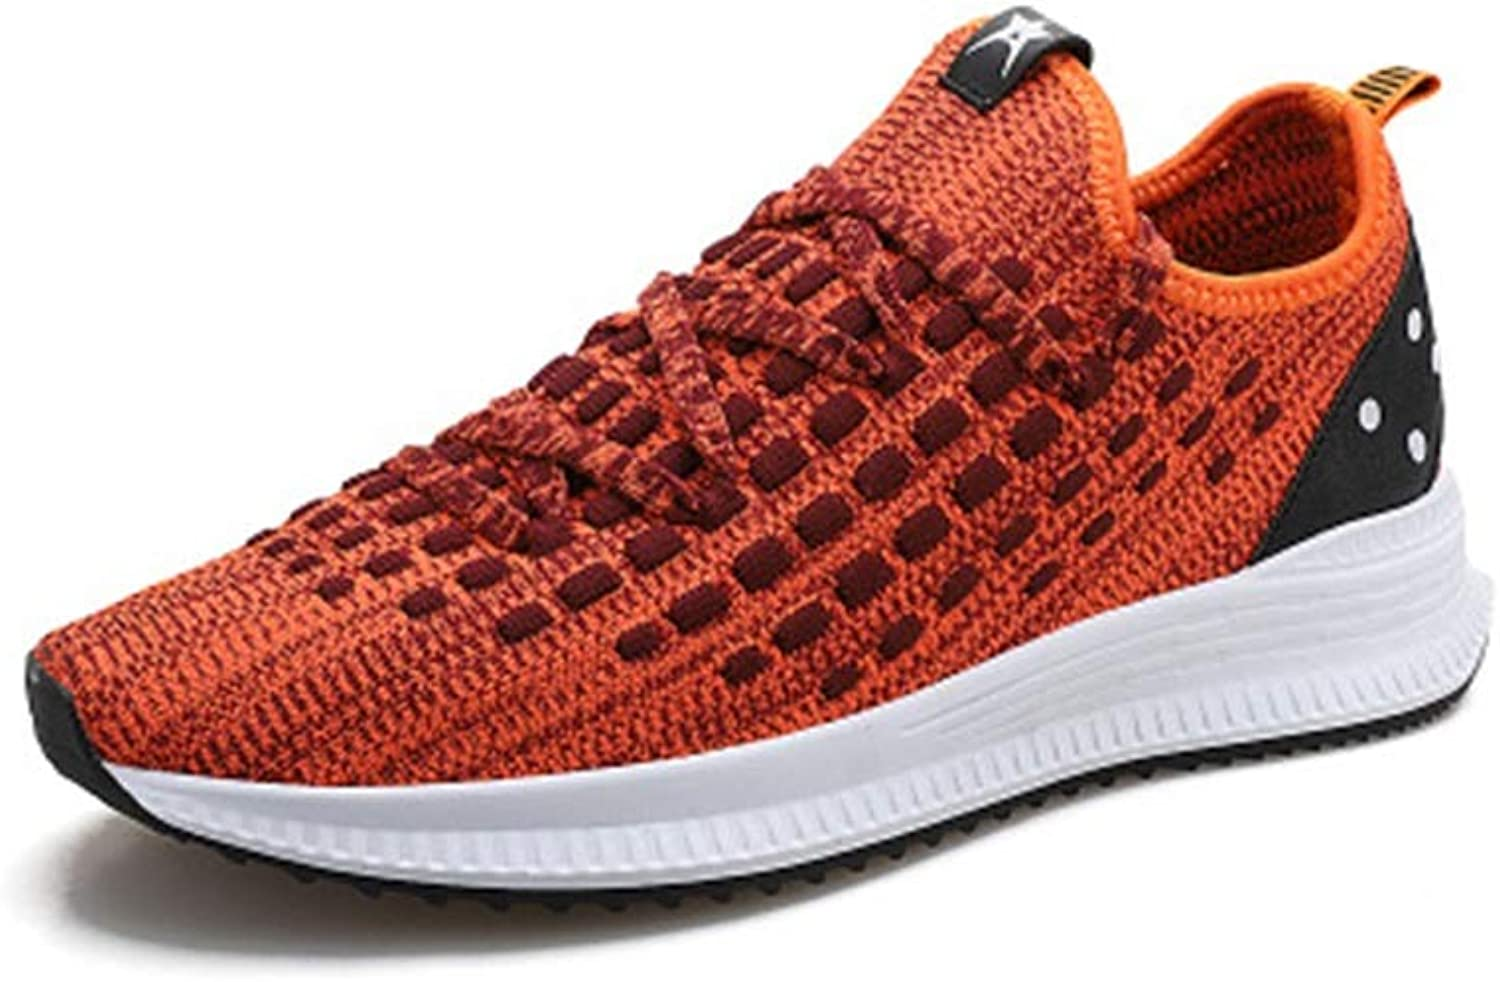 HIAO sandals Knitting shoes Sports shoes Net Breathable Flying Weaving Male Student Jogging Male Running shoes Simple Spring Summer Light Cool (color   orange, Size   8.5 UK)